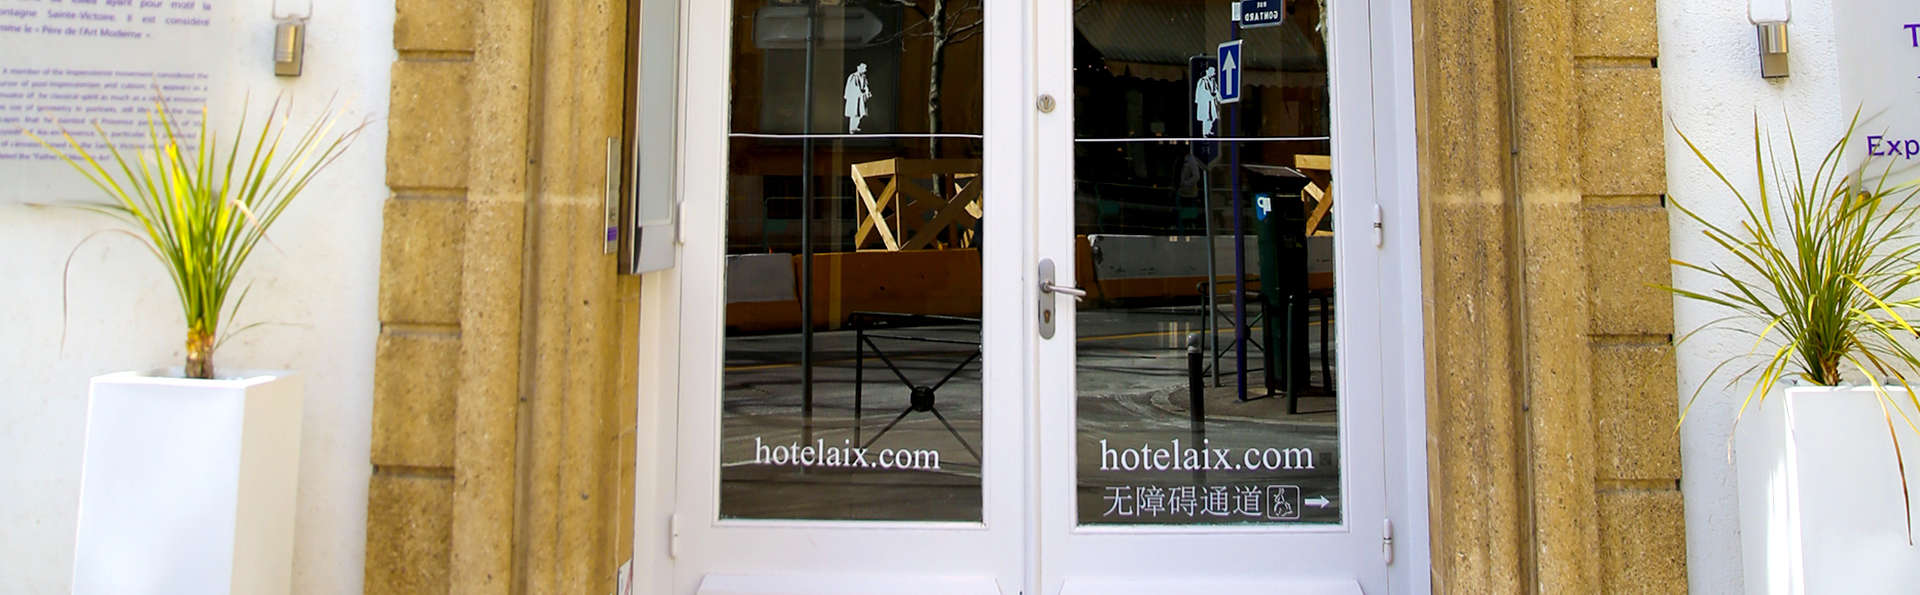 Hôtel Cézanne Boutique - EDIT_NEW_ENTRANCE.jpg